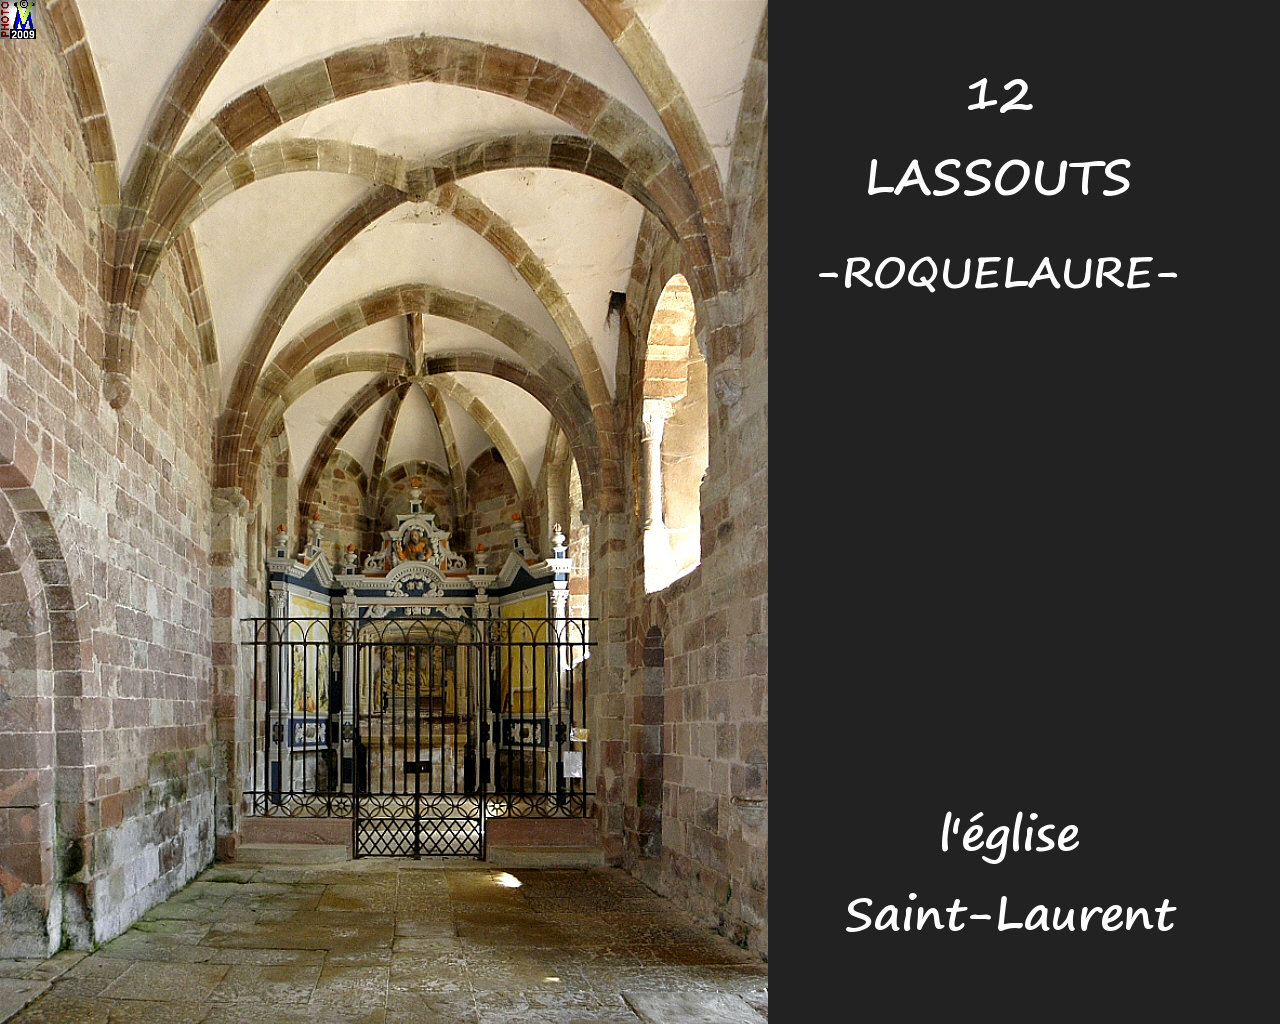 12LASSOUTS-ROQUE_chapelle_200.jpg